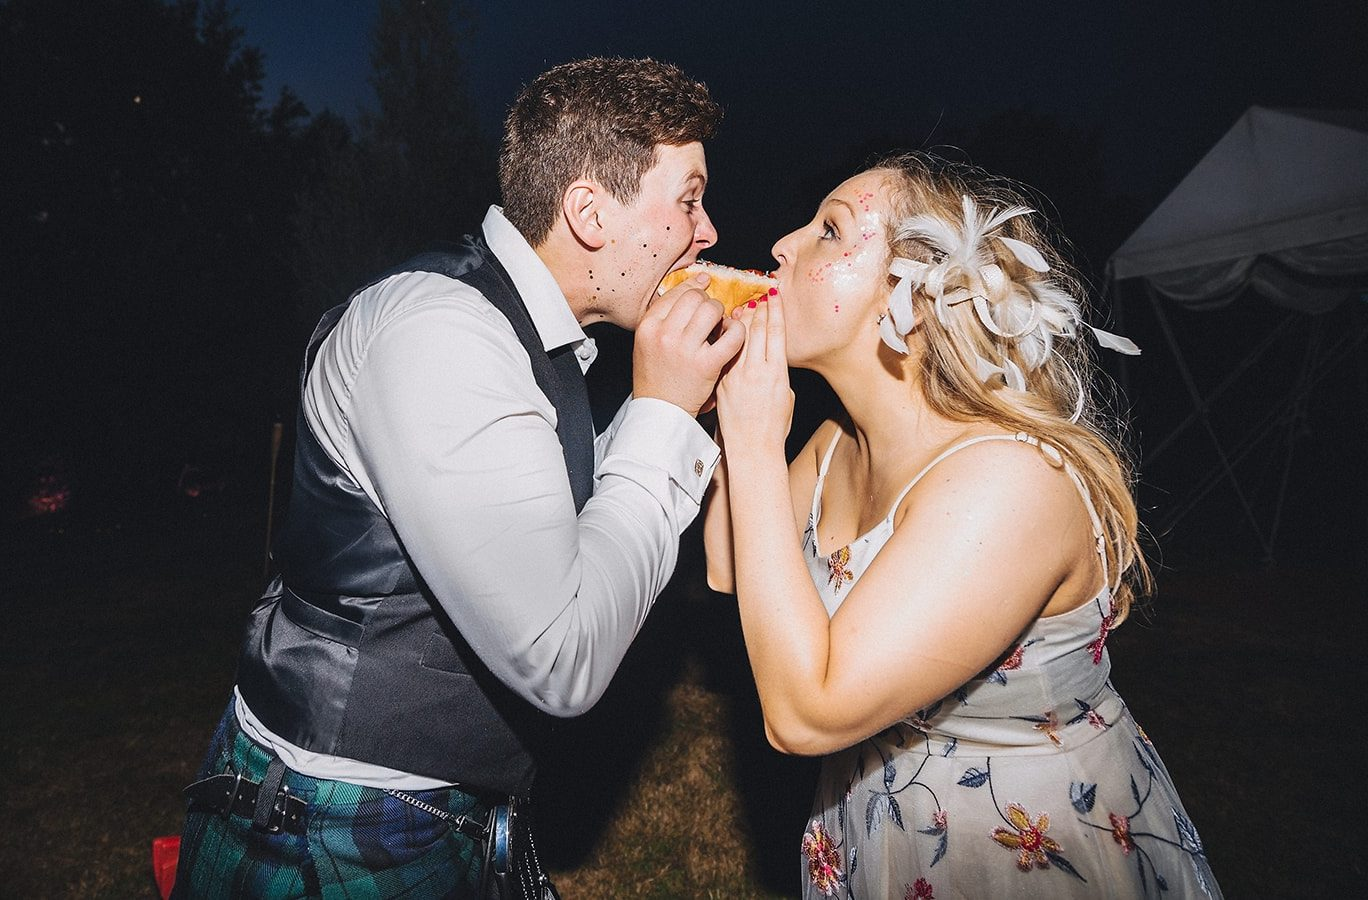 A man and woman share a hotdog at a wedding